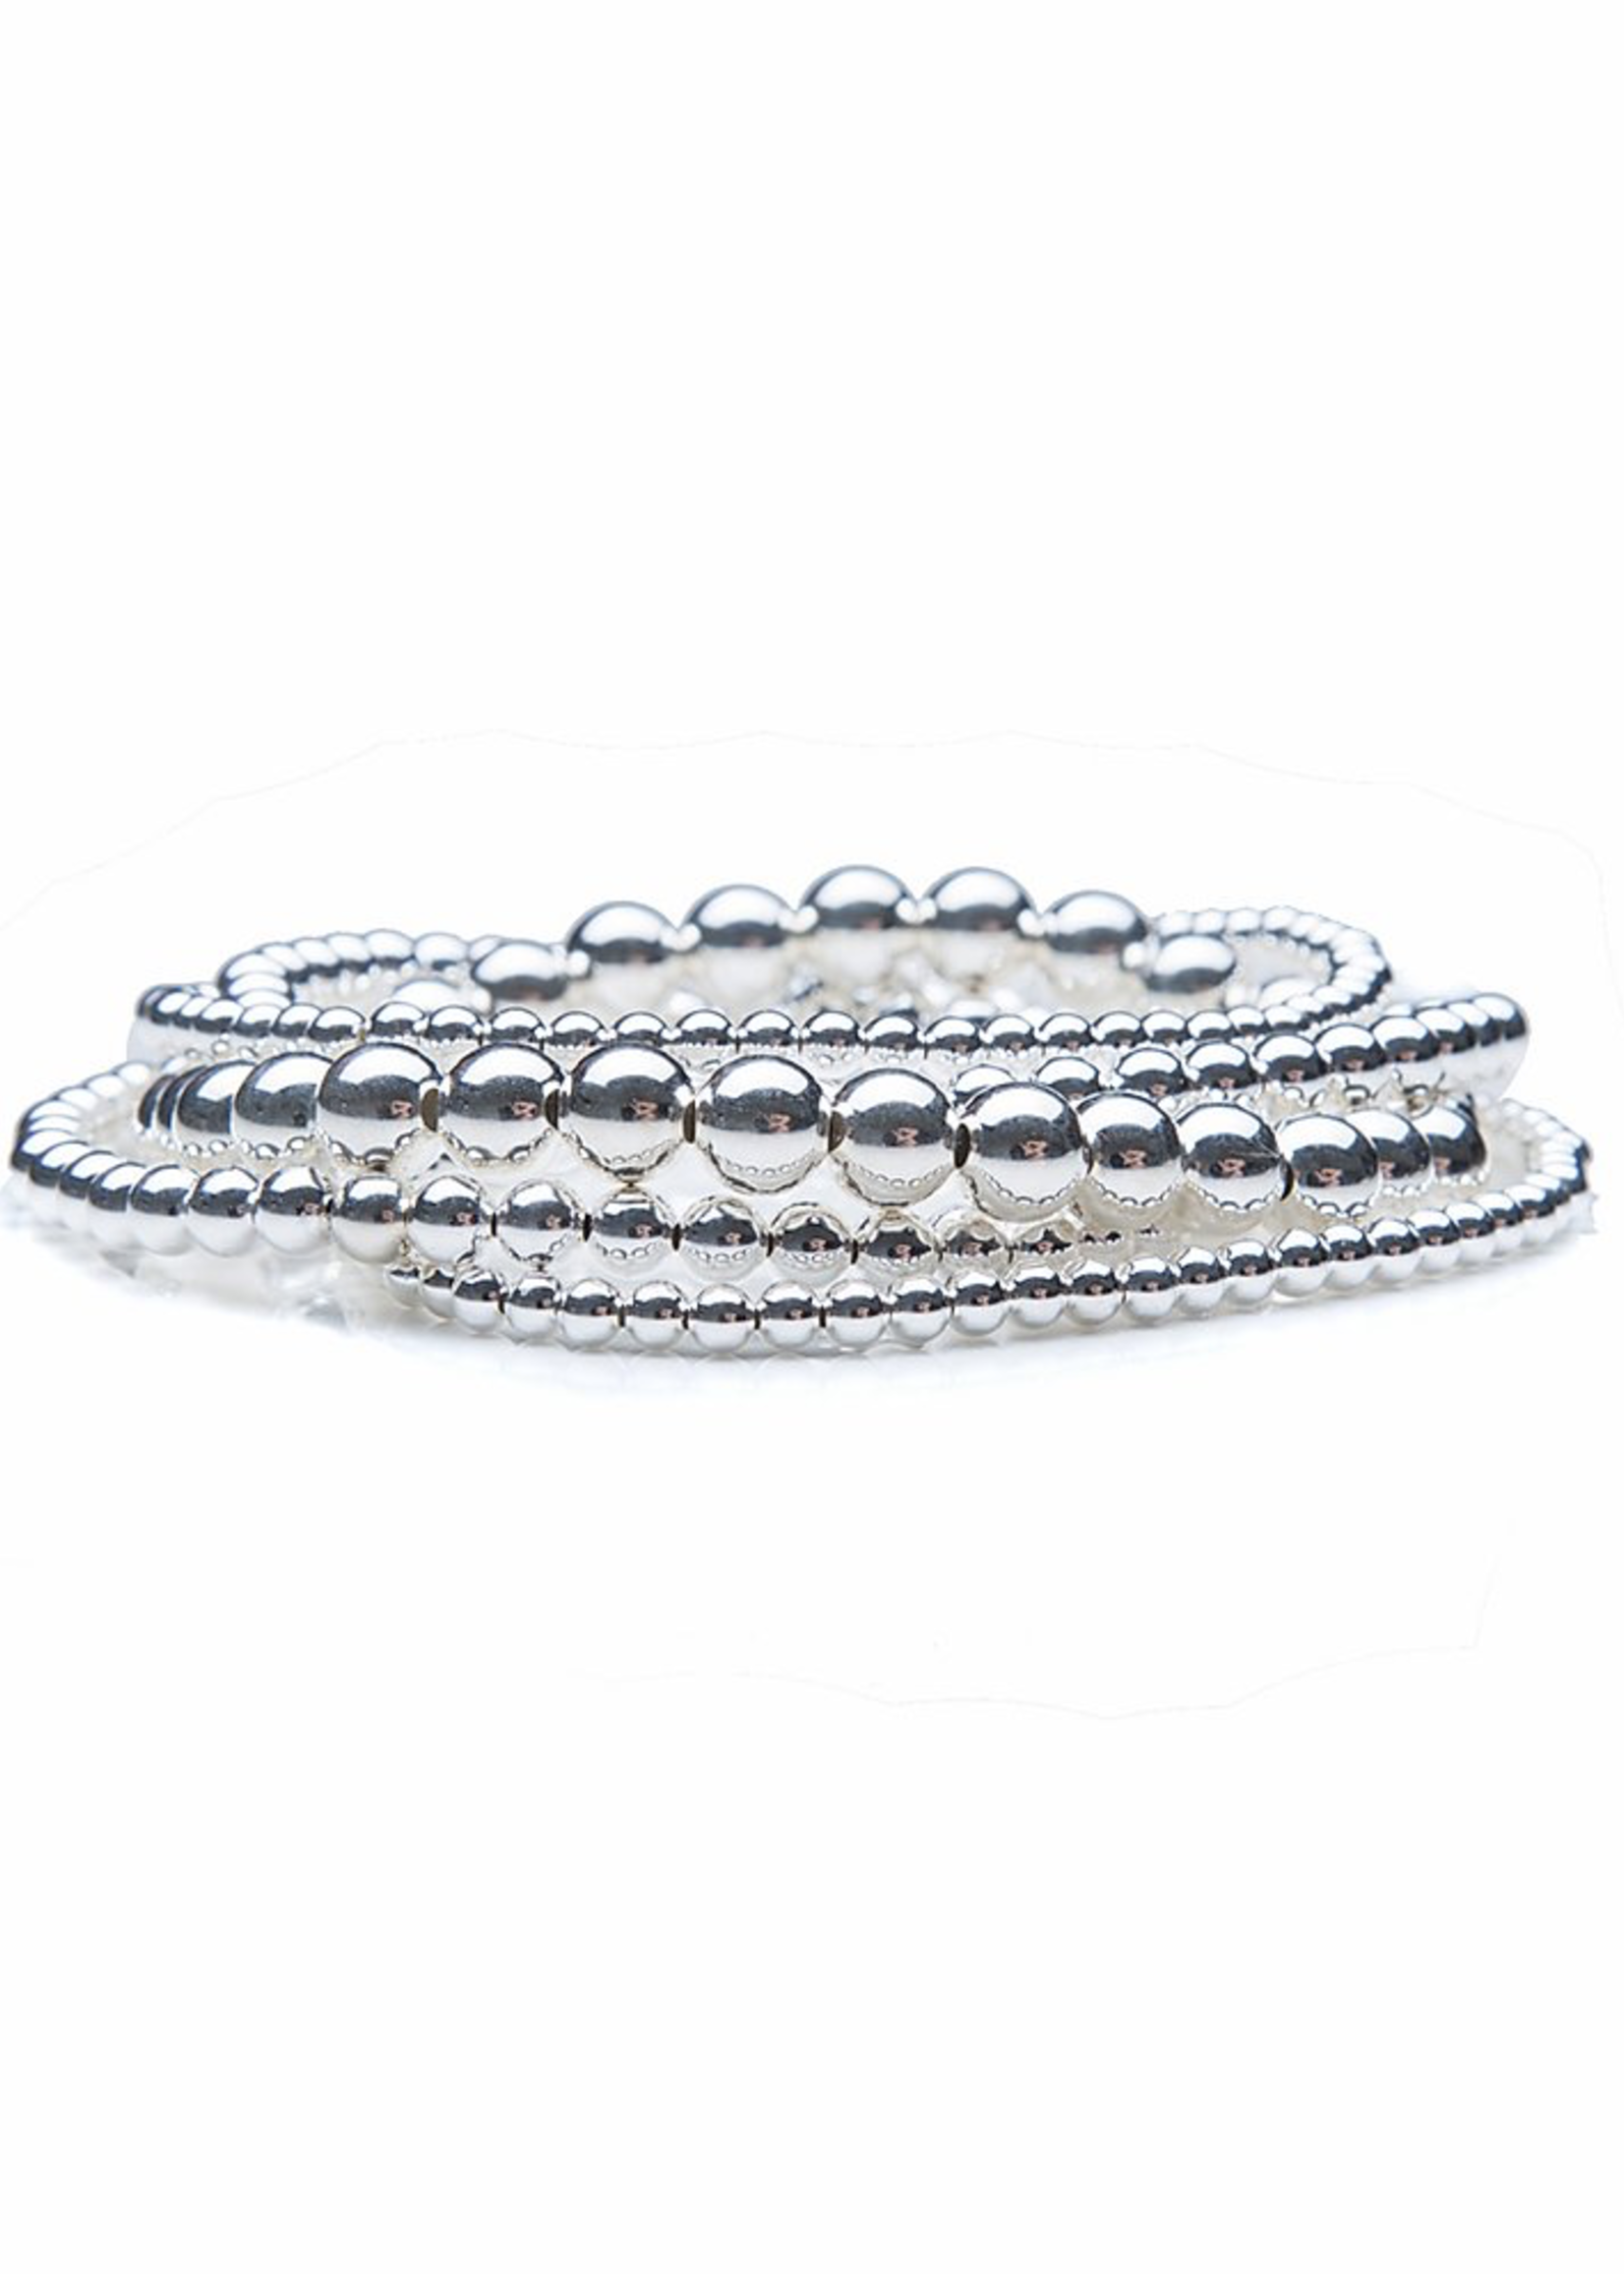 Annabelle's Collection Annabelle's Collection Mixed Silver Stack